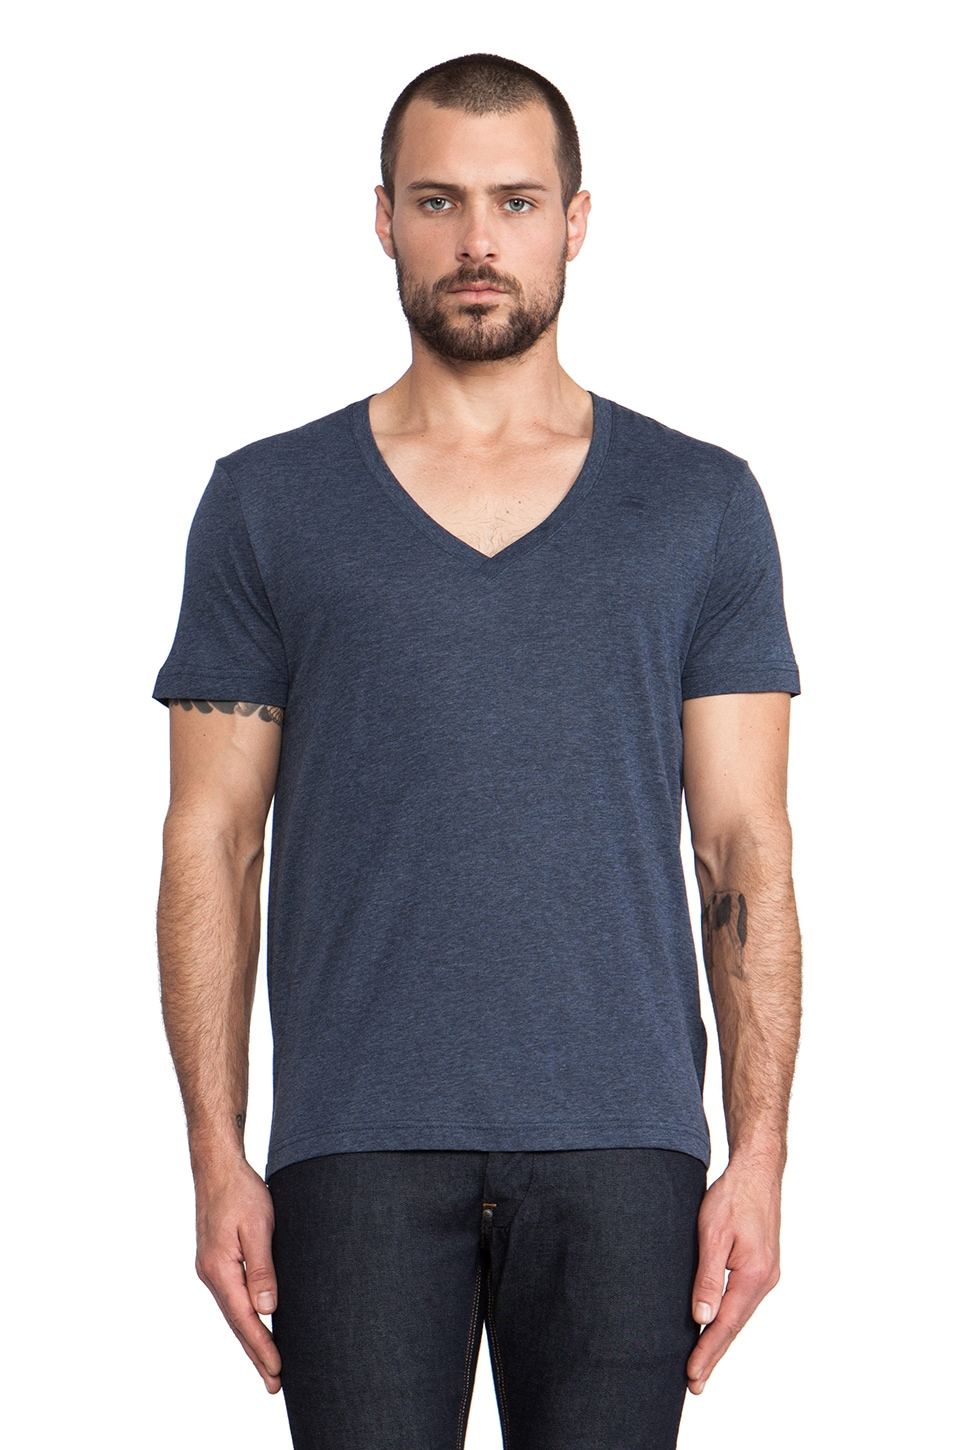 G-Star 2 Pack V-Neck Tees in Fantem Blue Heather